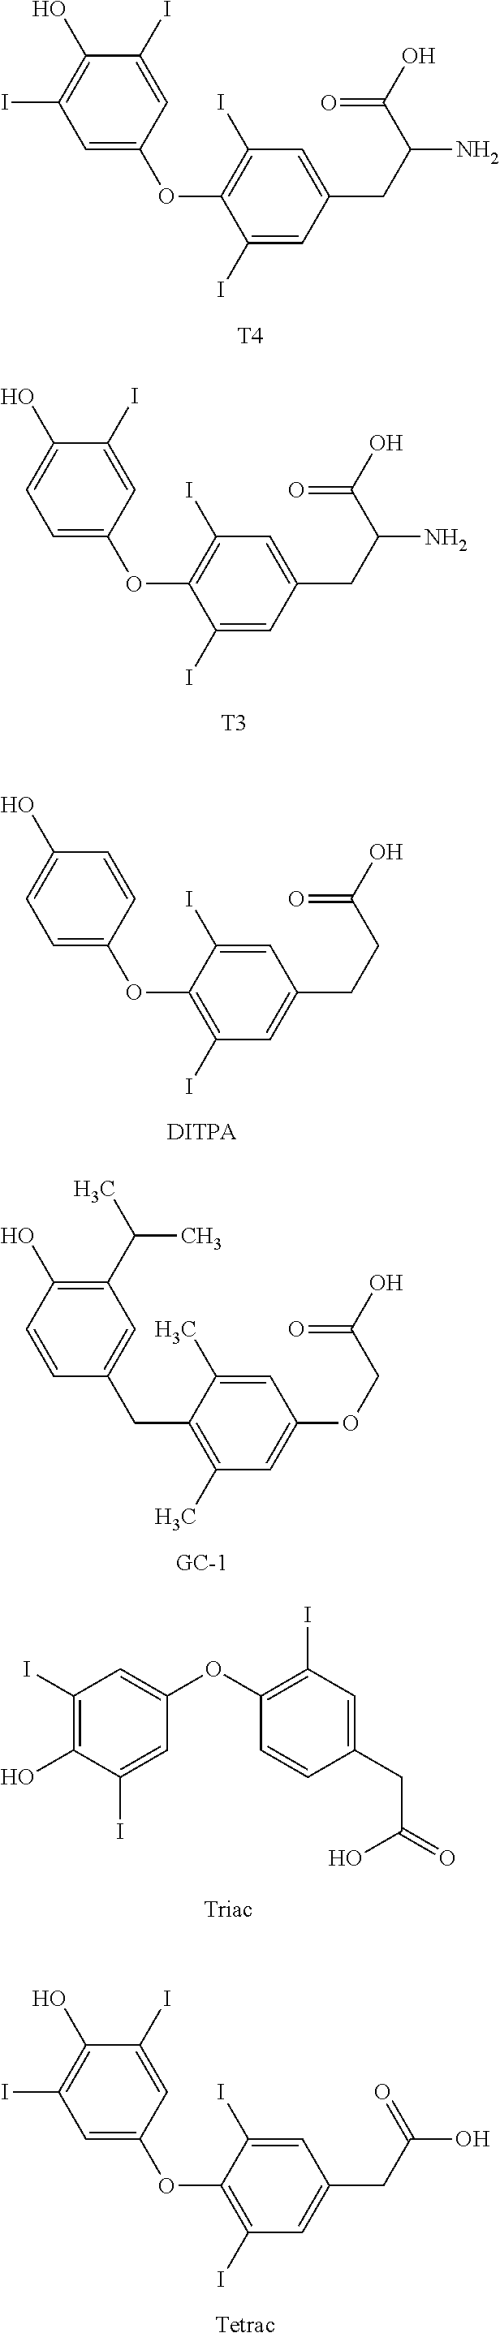 small resolution of figure us20120315320a1 20121213 c00001